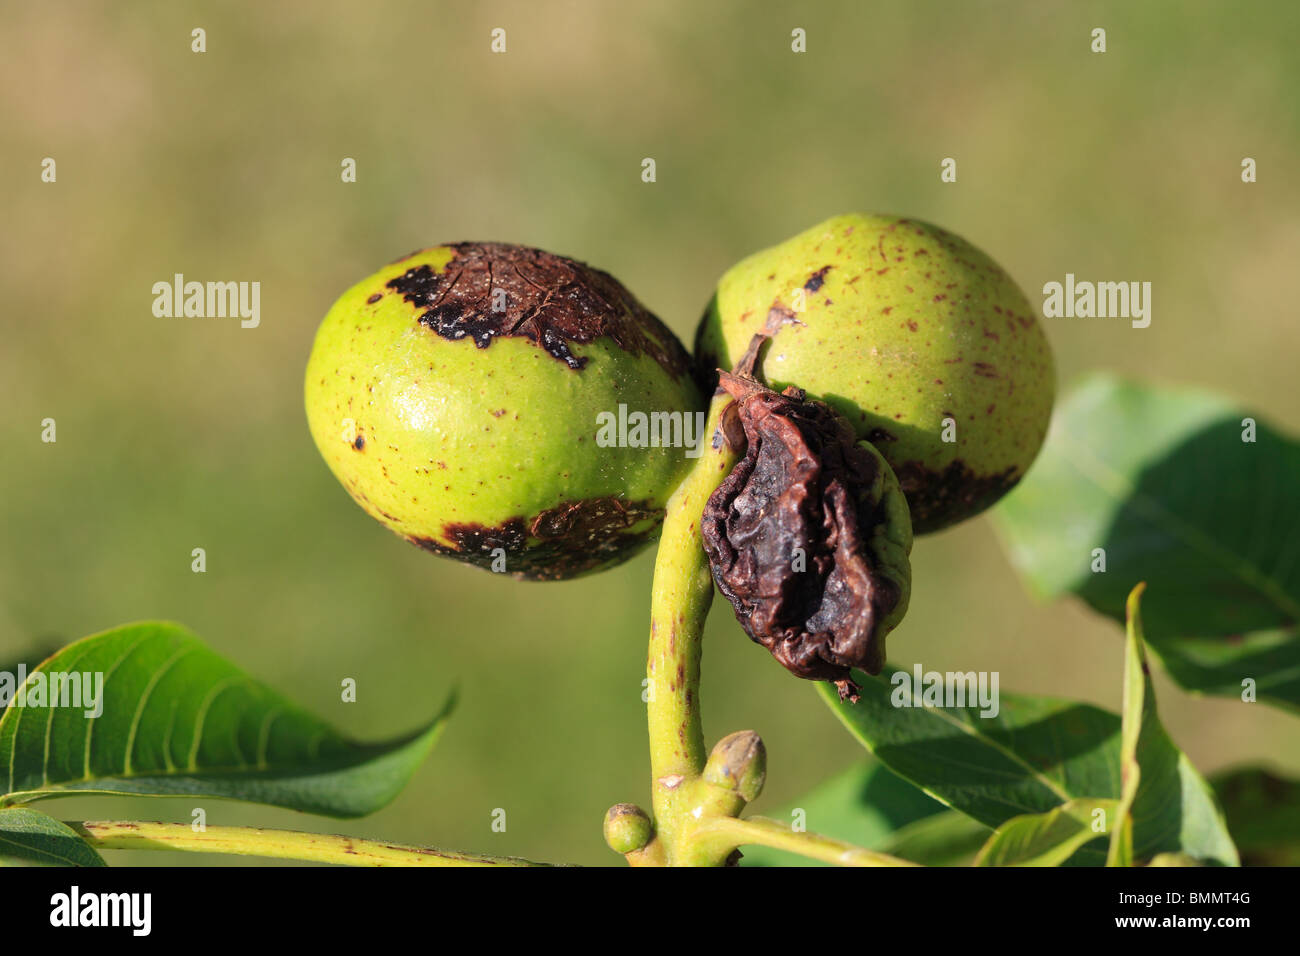 WALNUT LEAF BLOTCH (Gnomonia leptostyla) ON DEVELOPING WALNUTS - Stock Image